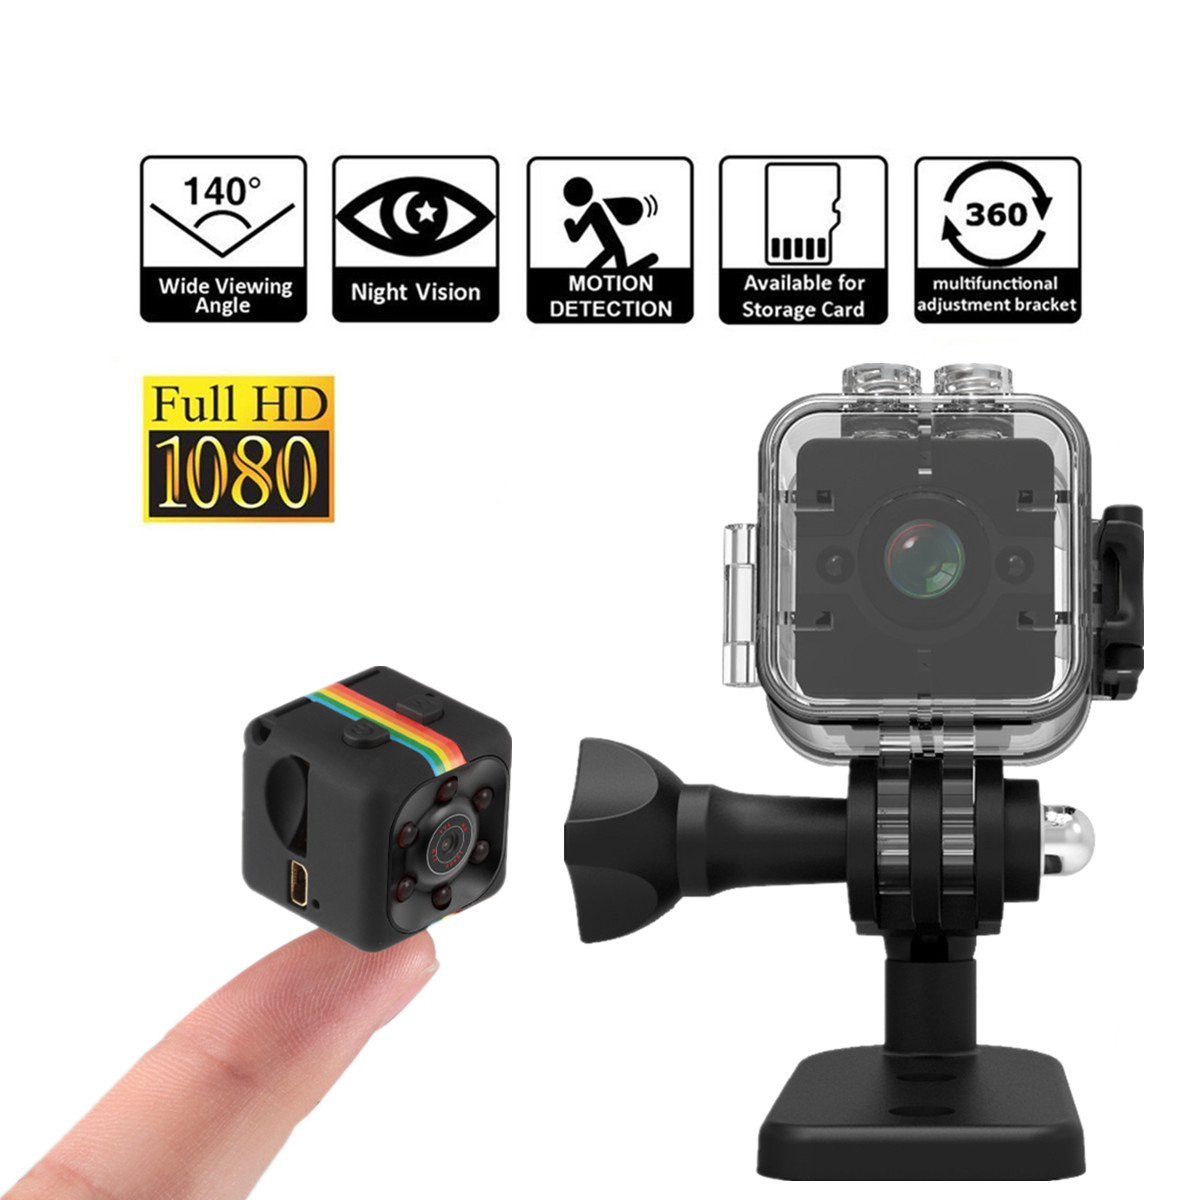 Mini Camera SQ11 1080P Full HD Micro Cam Motion Detection Camcorder Infrared Night Vision Video Recorder Wide Angle sq12 SQ 11 mini camera sq11 1080p full hd micro cam motion detection camcorder infrared night vision video recorder wide angle sq12 sq 11